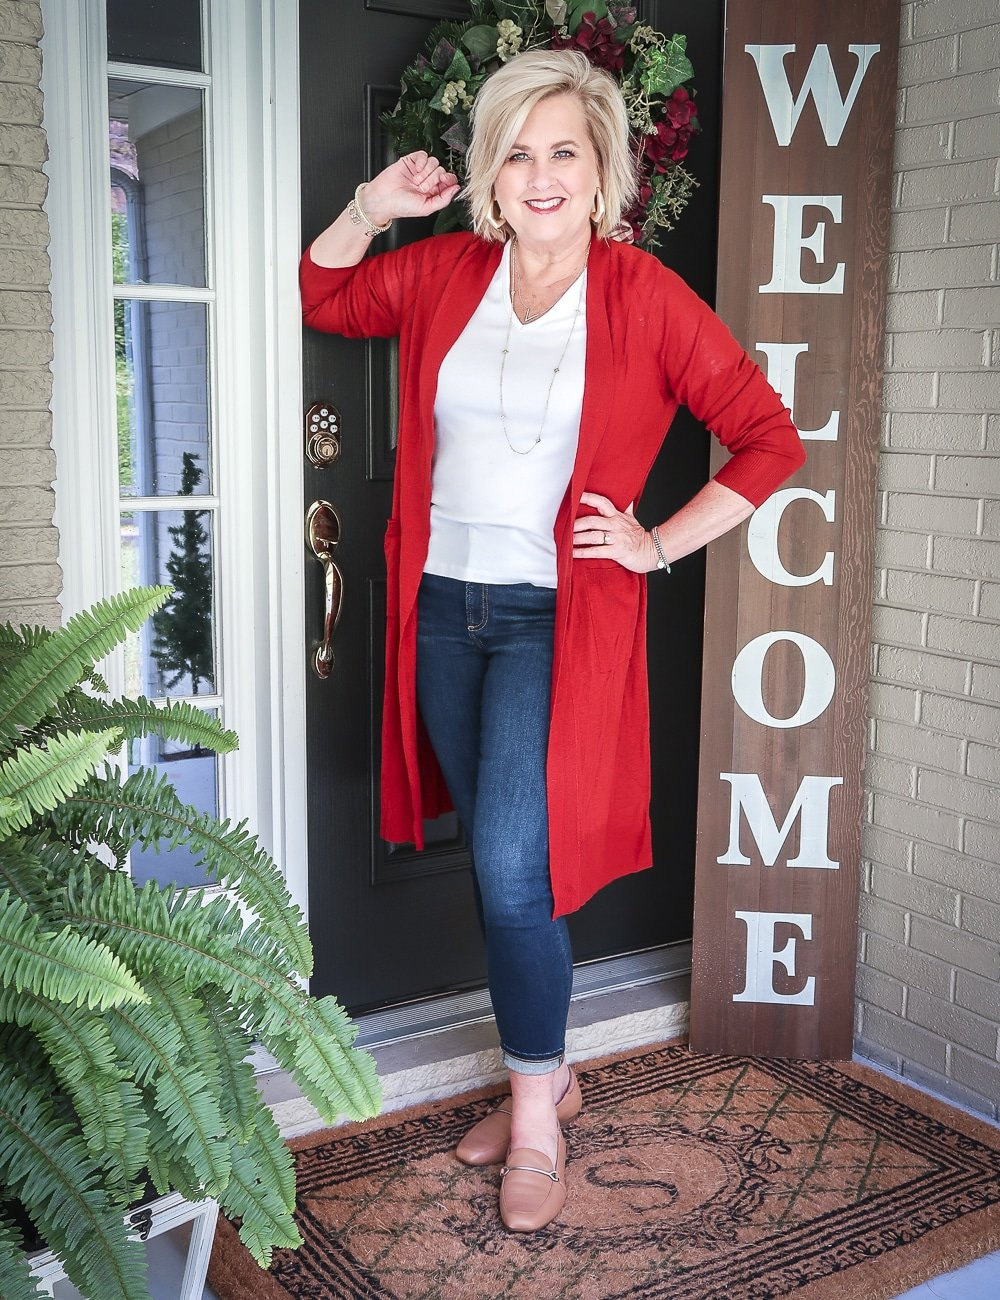 Fashion Blogger 50 Is Not Old is doing a Tuesday Try-On Session with Target and styling a red duster with a white v-neck tee shirt